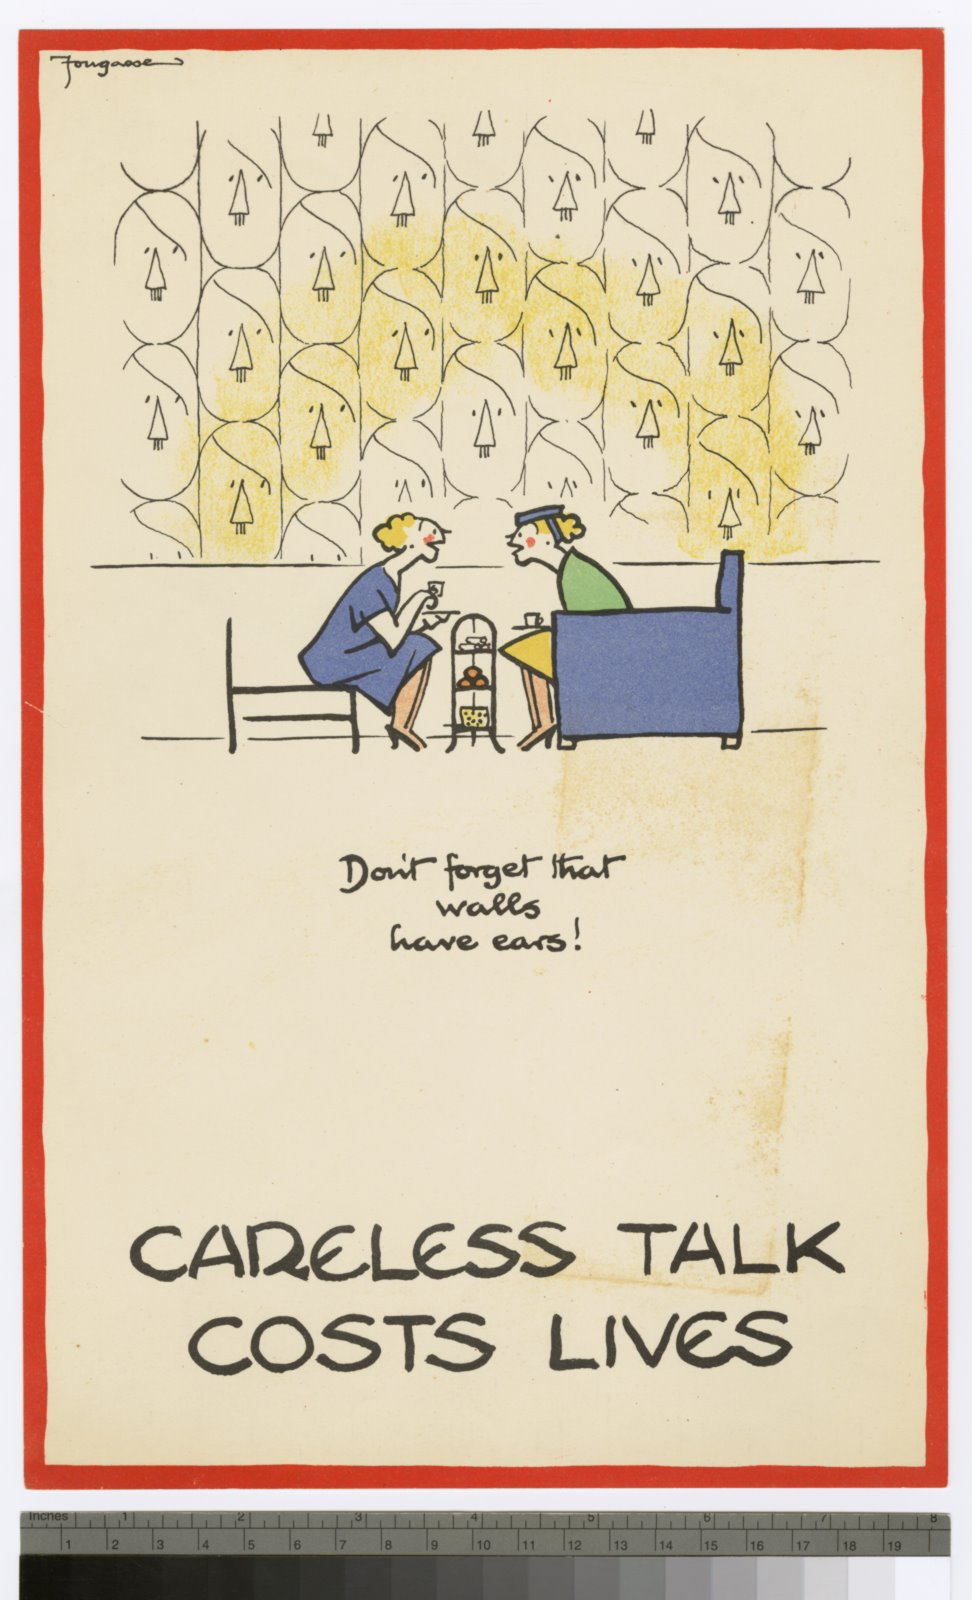 Careless talk costs lives posters